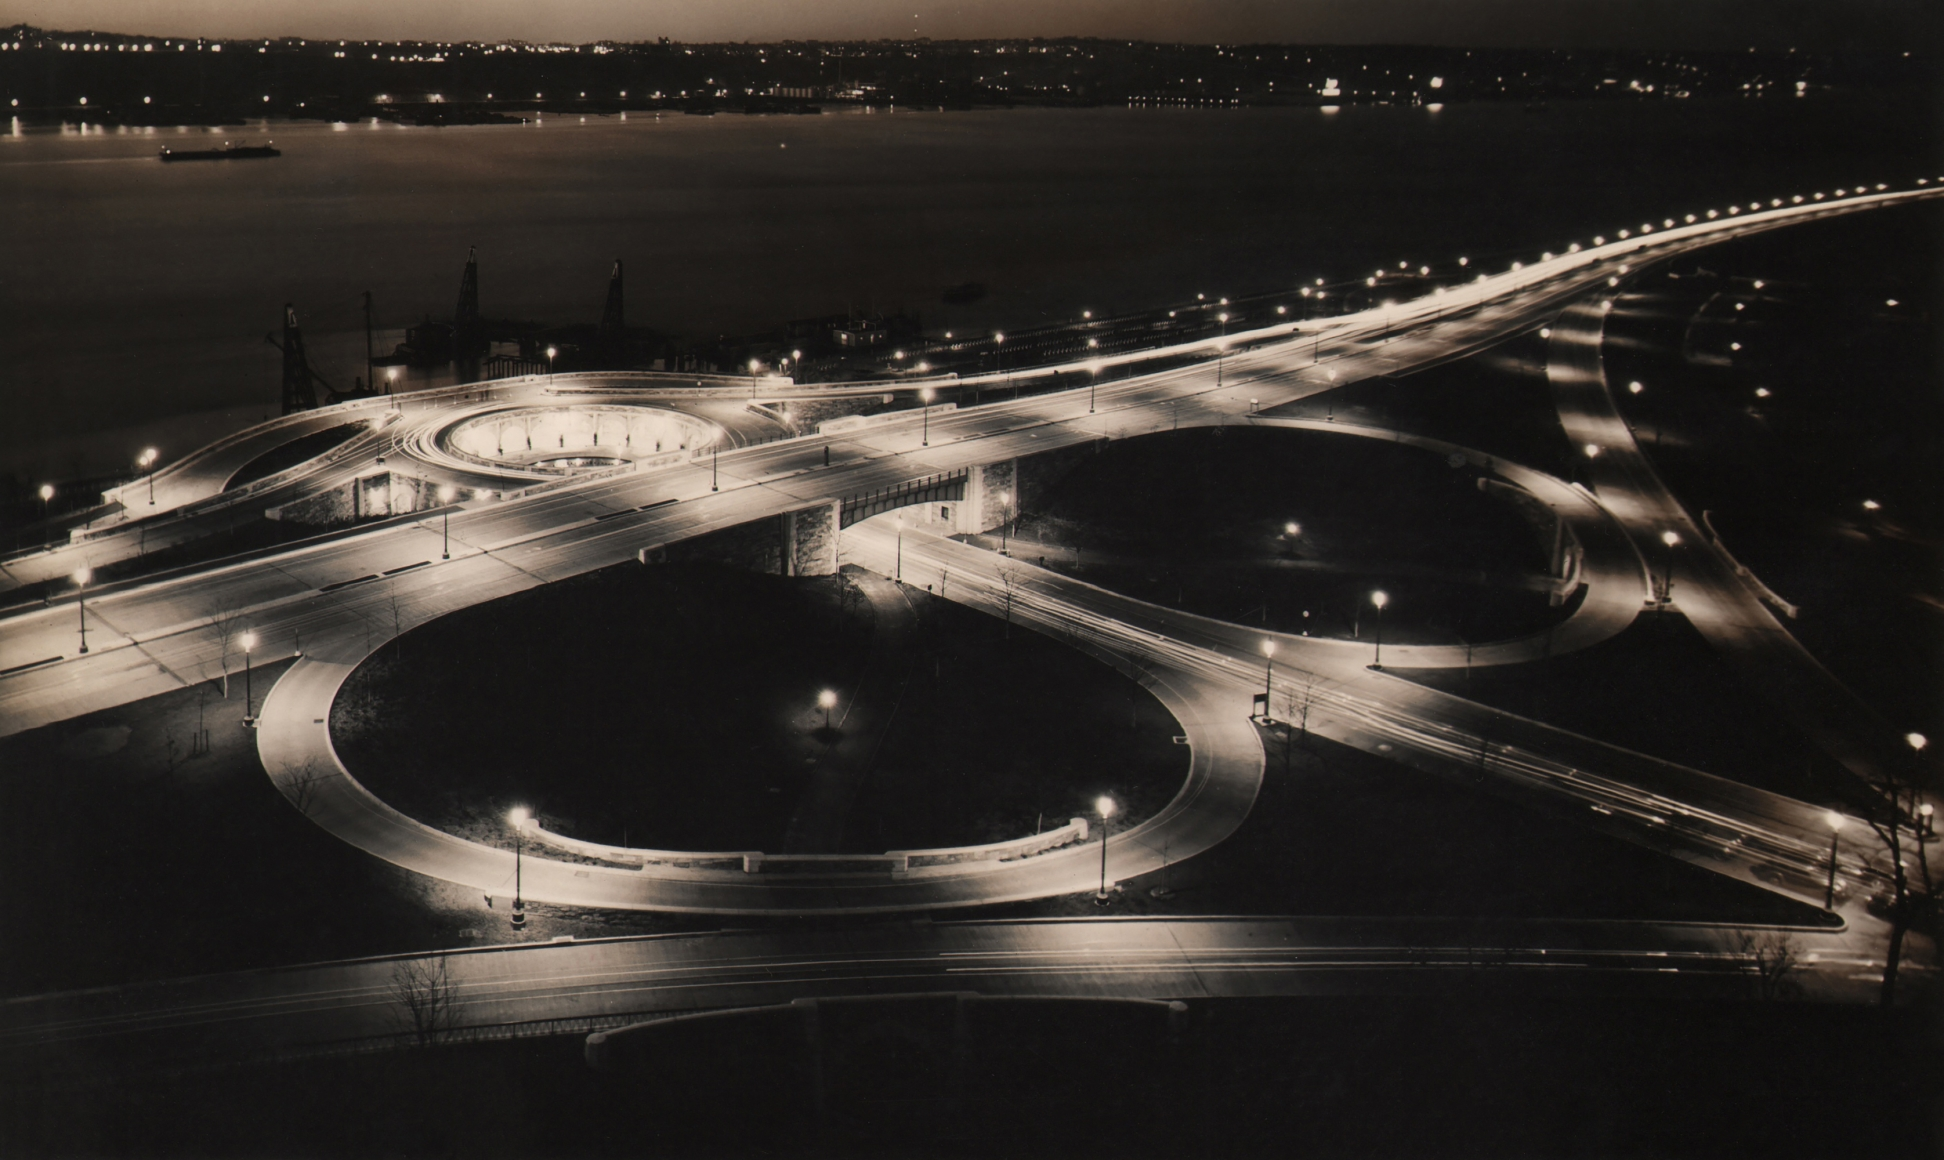 Paul J. Woolf, 86th Street Clover Leaf at Night, c. 1935. Night time view of riverside street with circular on- and off-ramps.